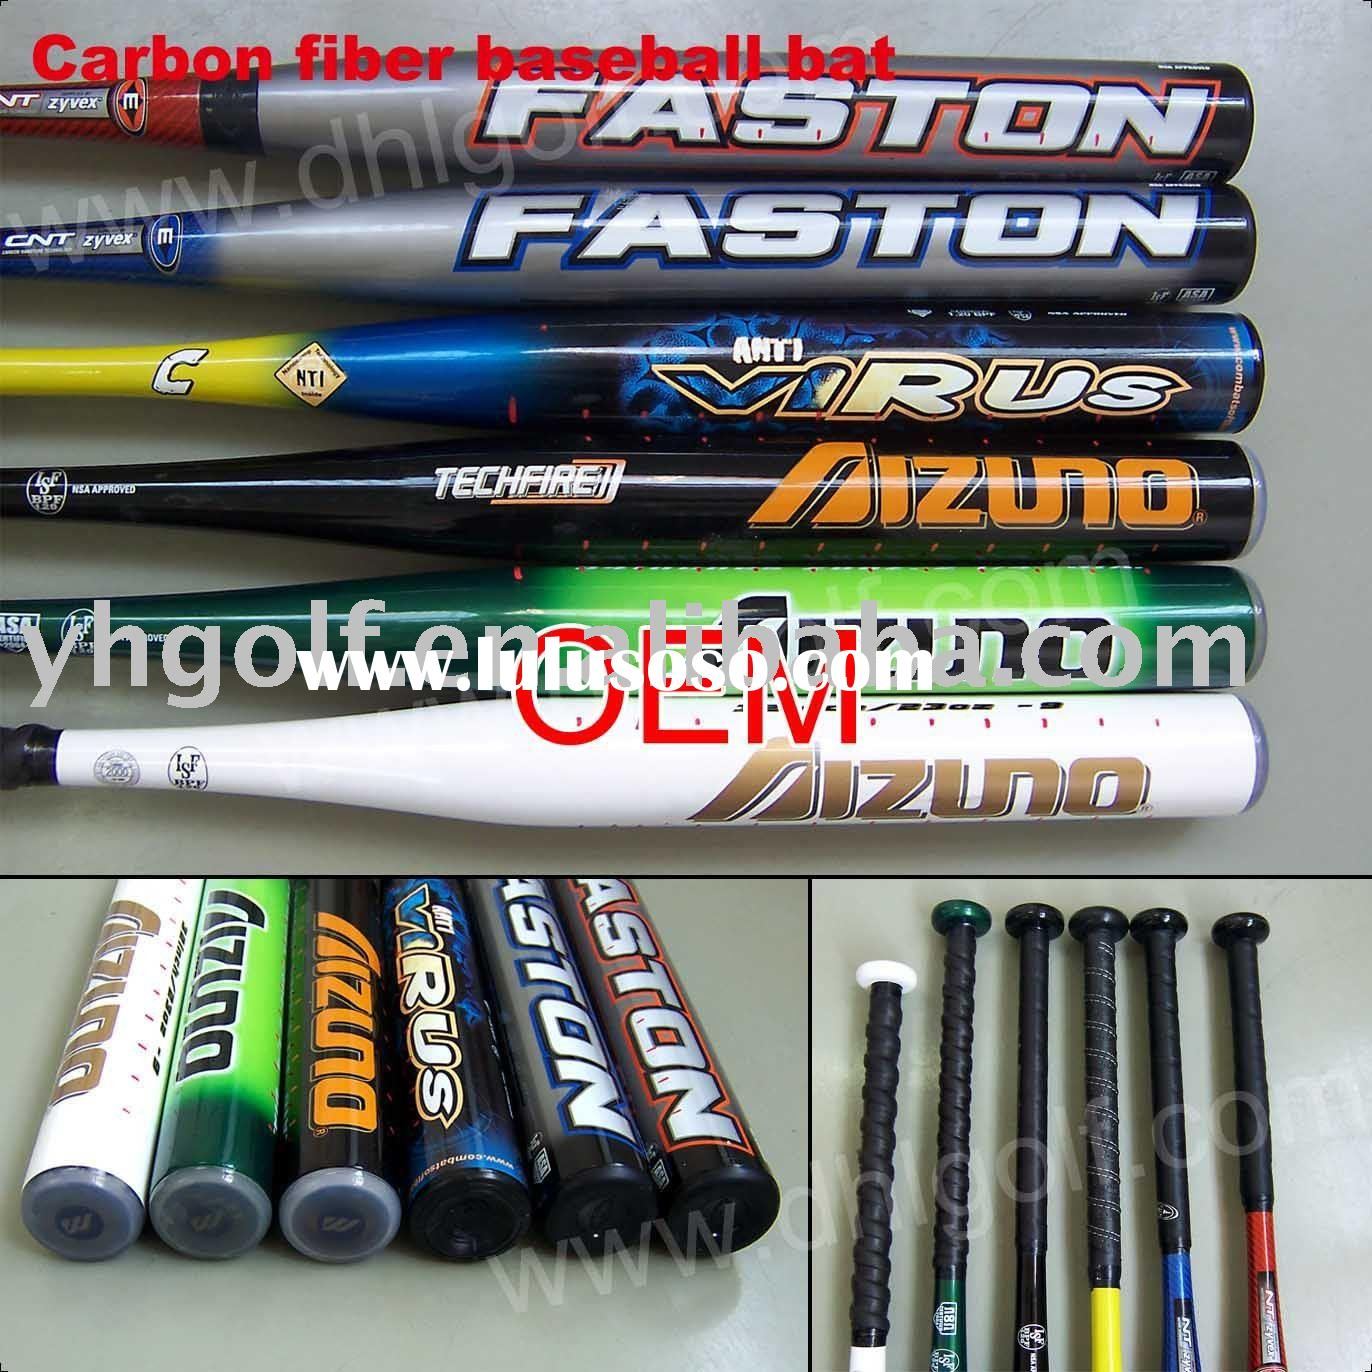 Carbon fiber baseball bat